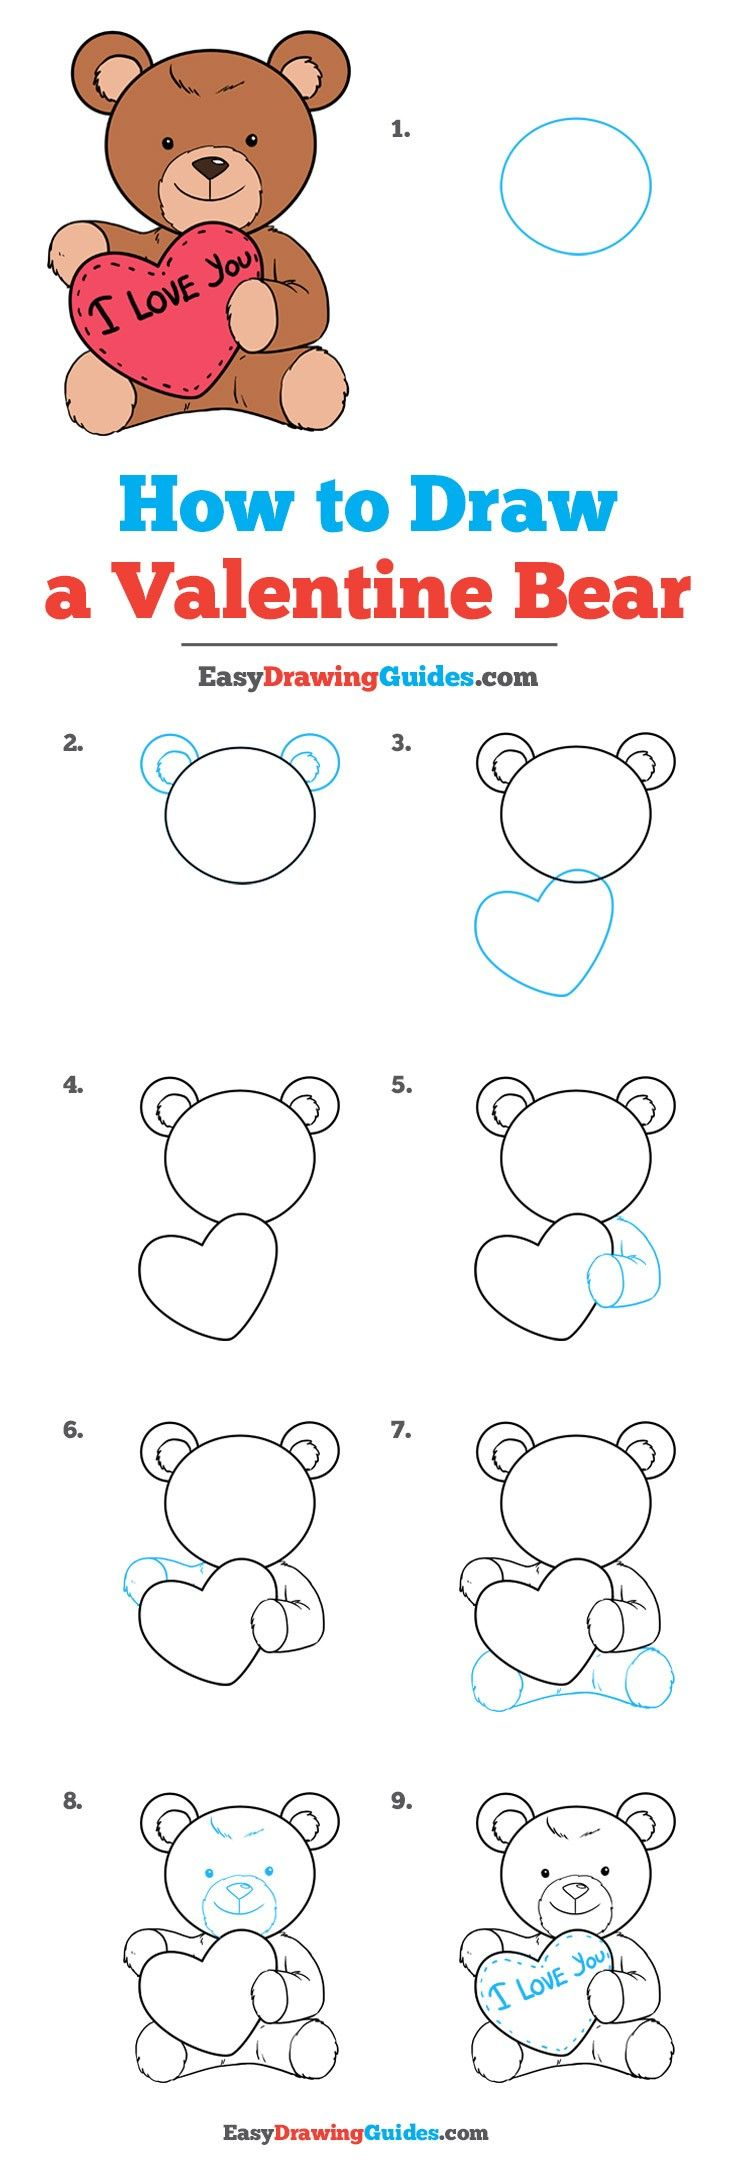 How To Draw A Teddy Bear With A Heart Really Easy Drawing Tutorial